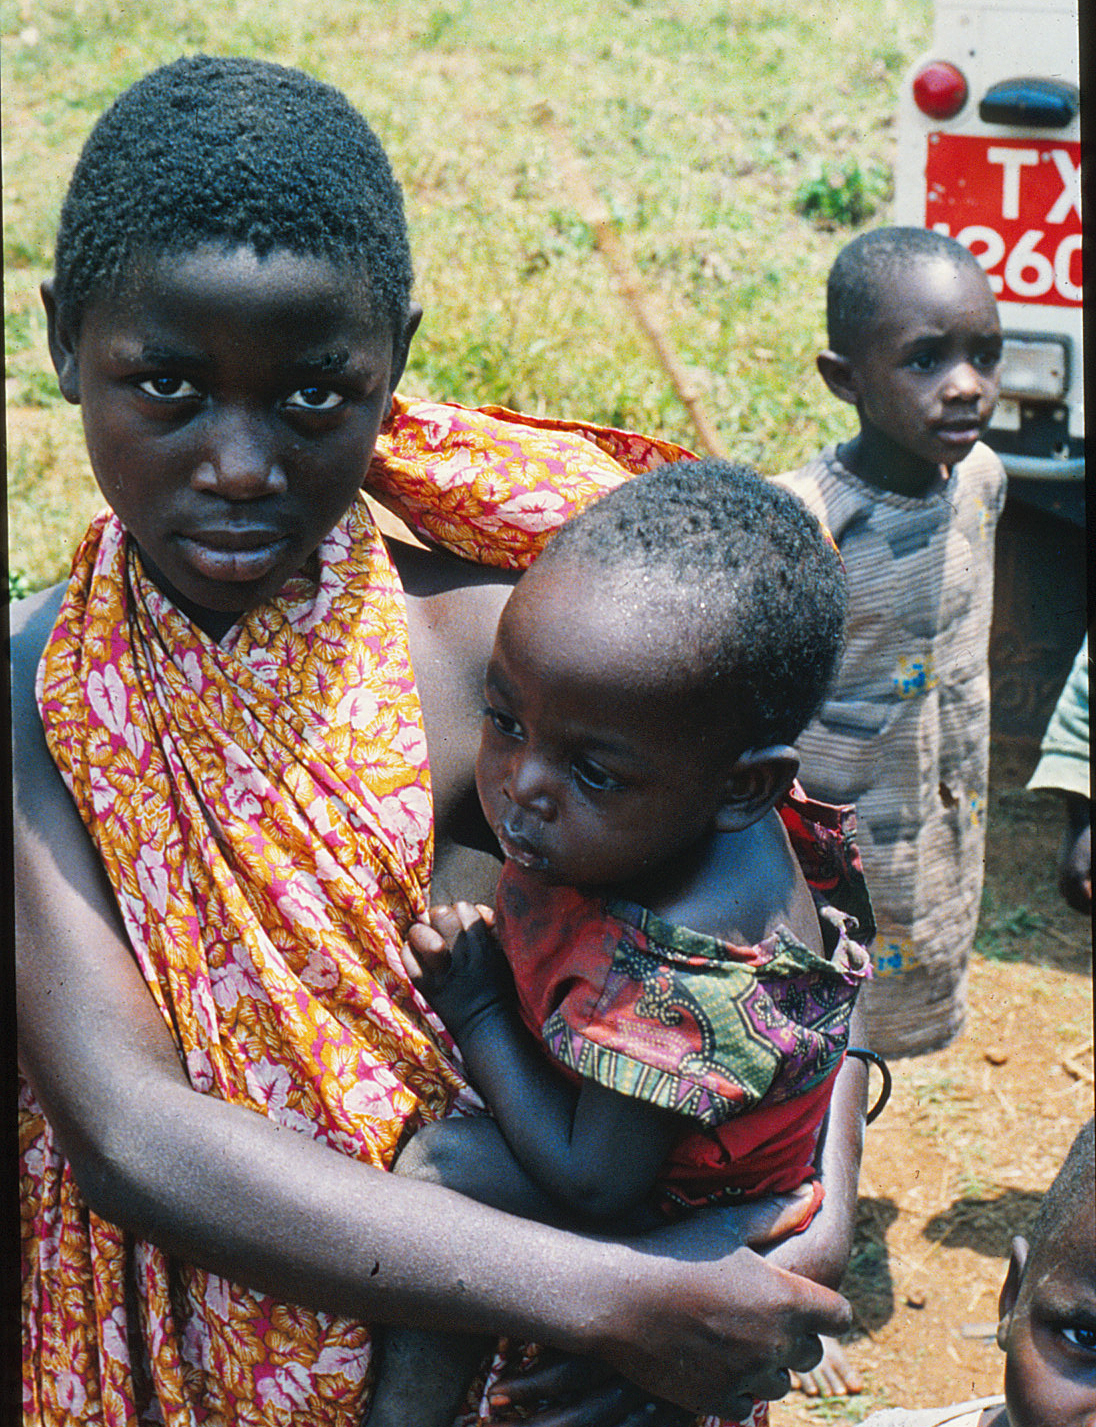 Her-parents-died-of-AIDS-and-now-this-little-girl-is-the-Mama-fo-(deleted-4db1f9aa-9018fc-ffd687bb).jpg